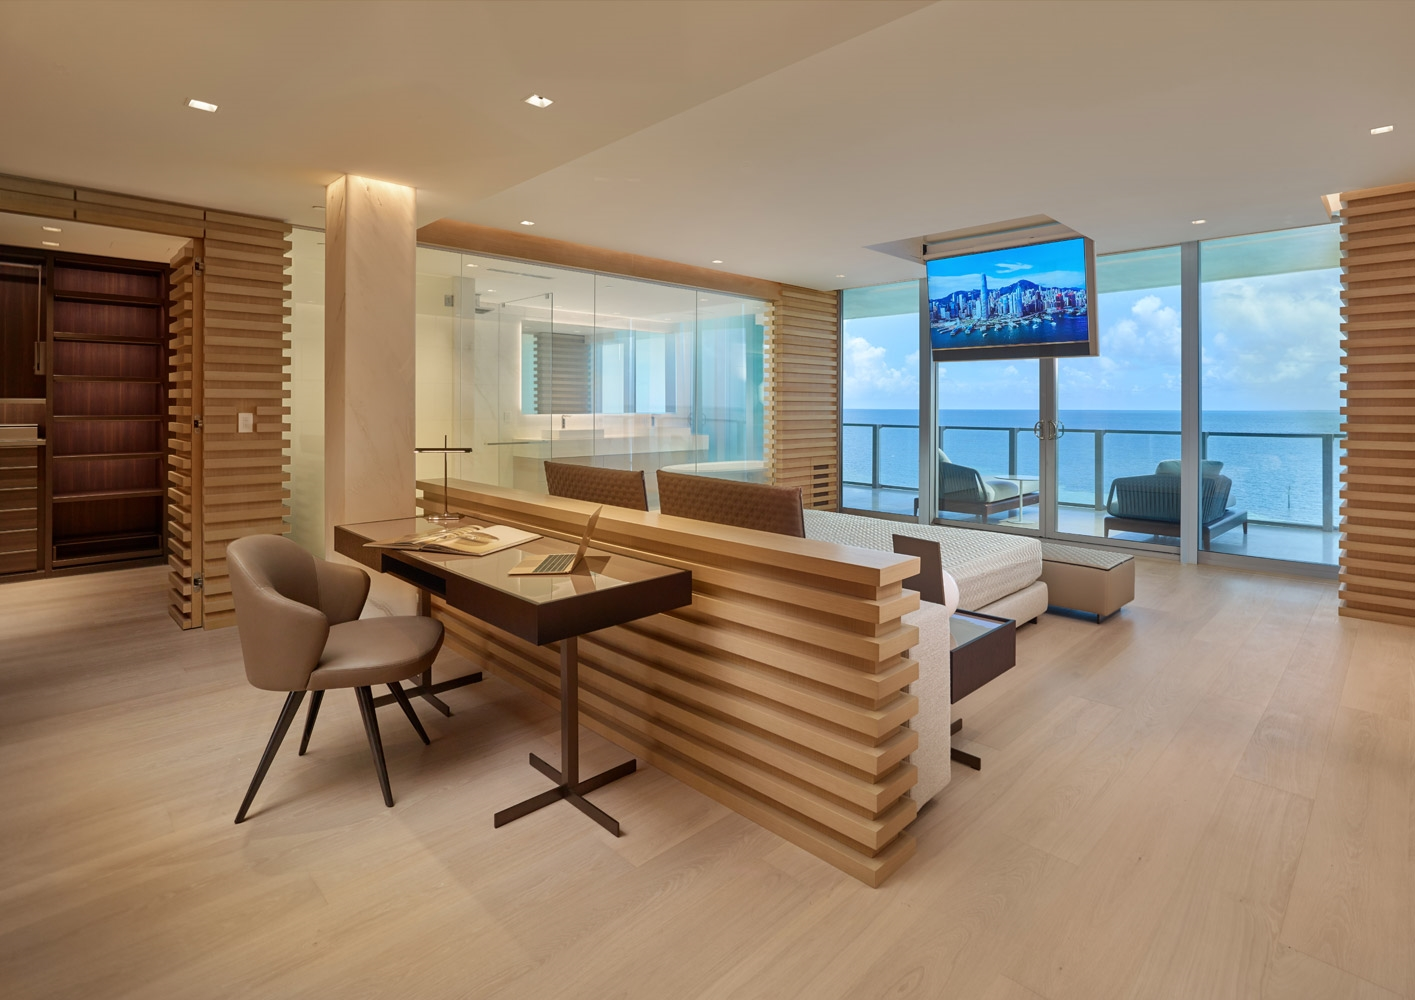 Key biscayne residential project interiors & contract en